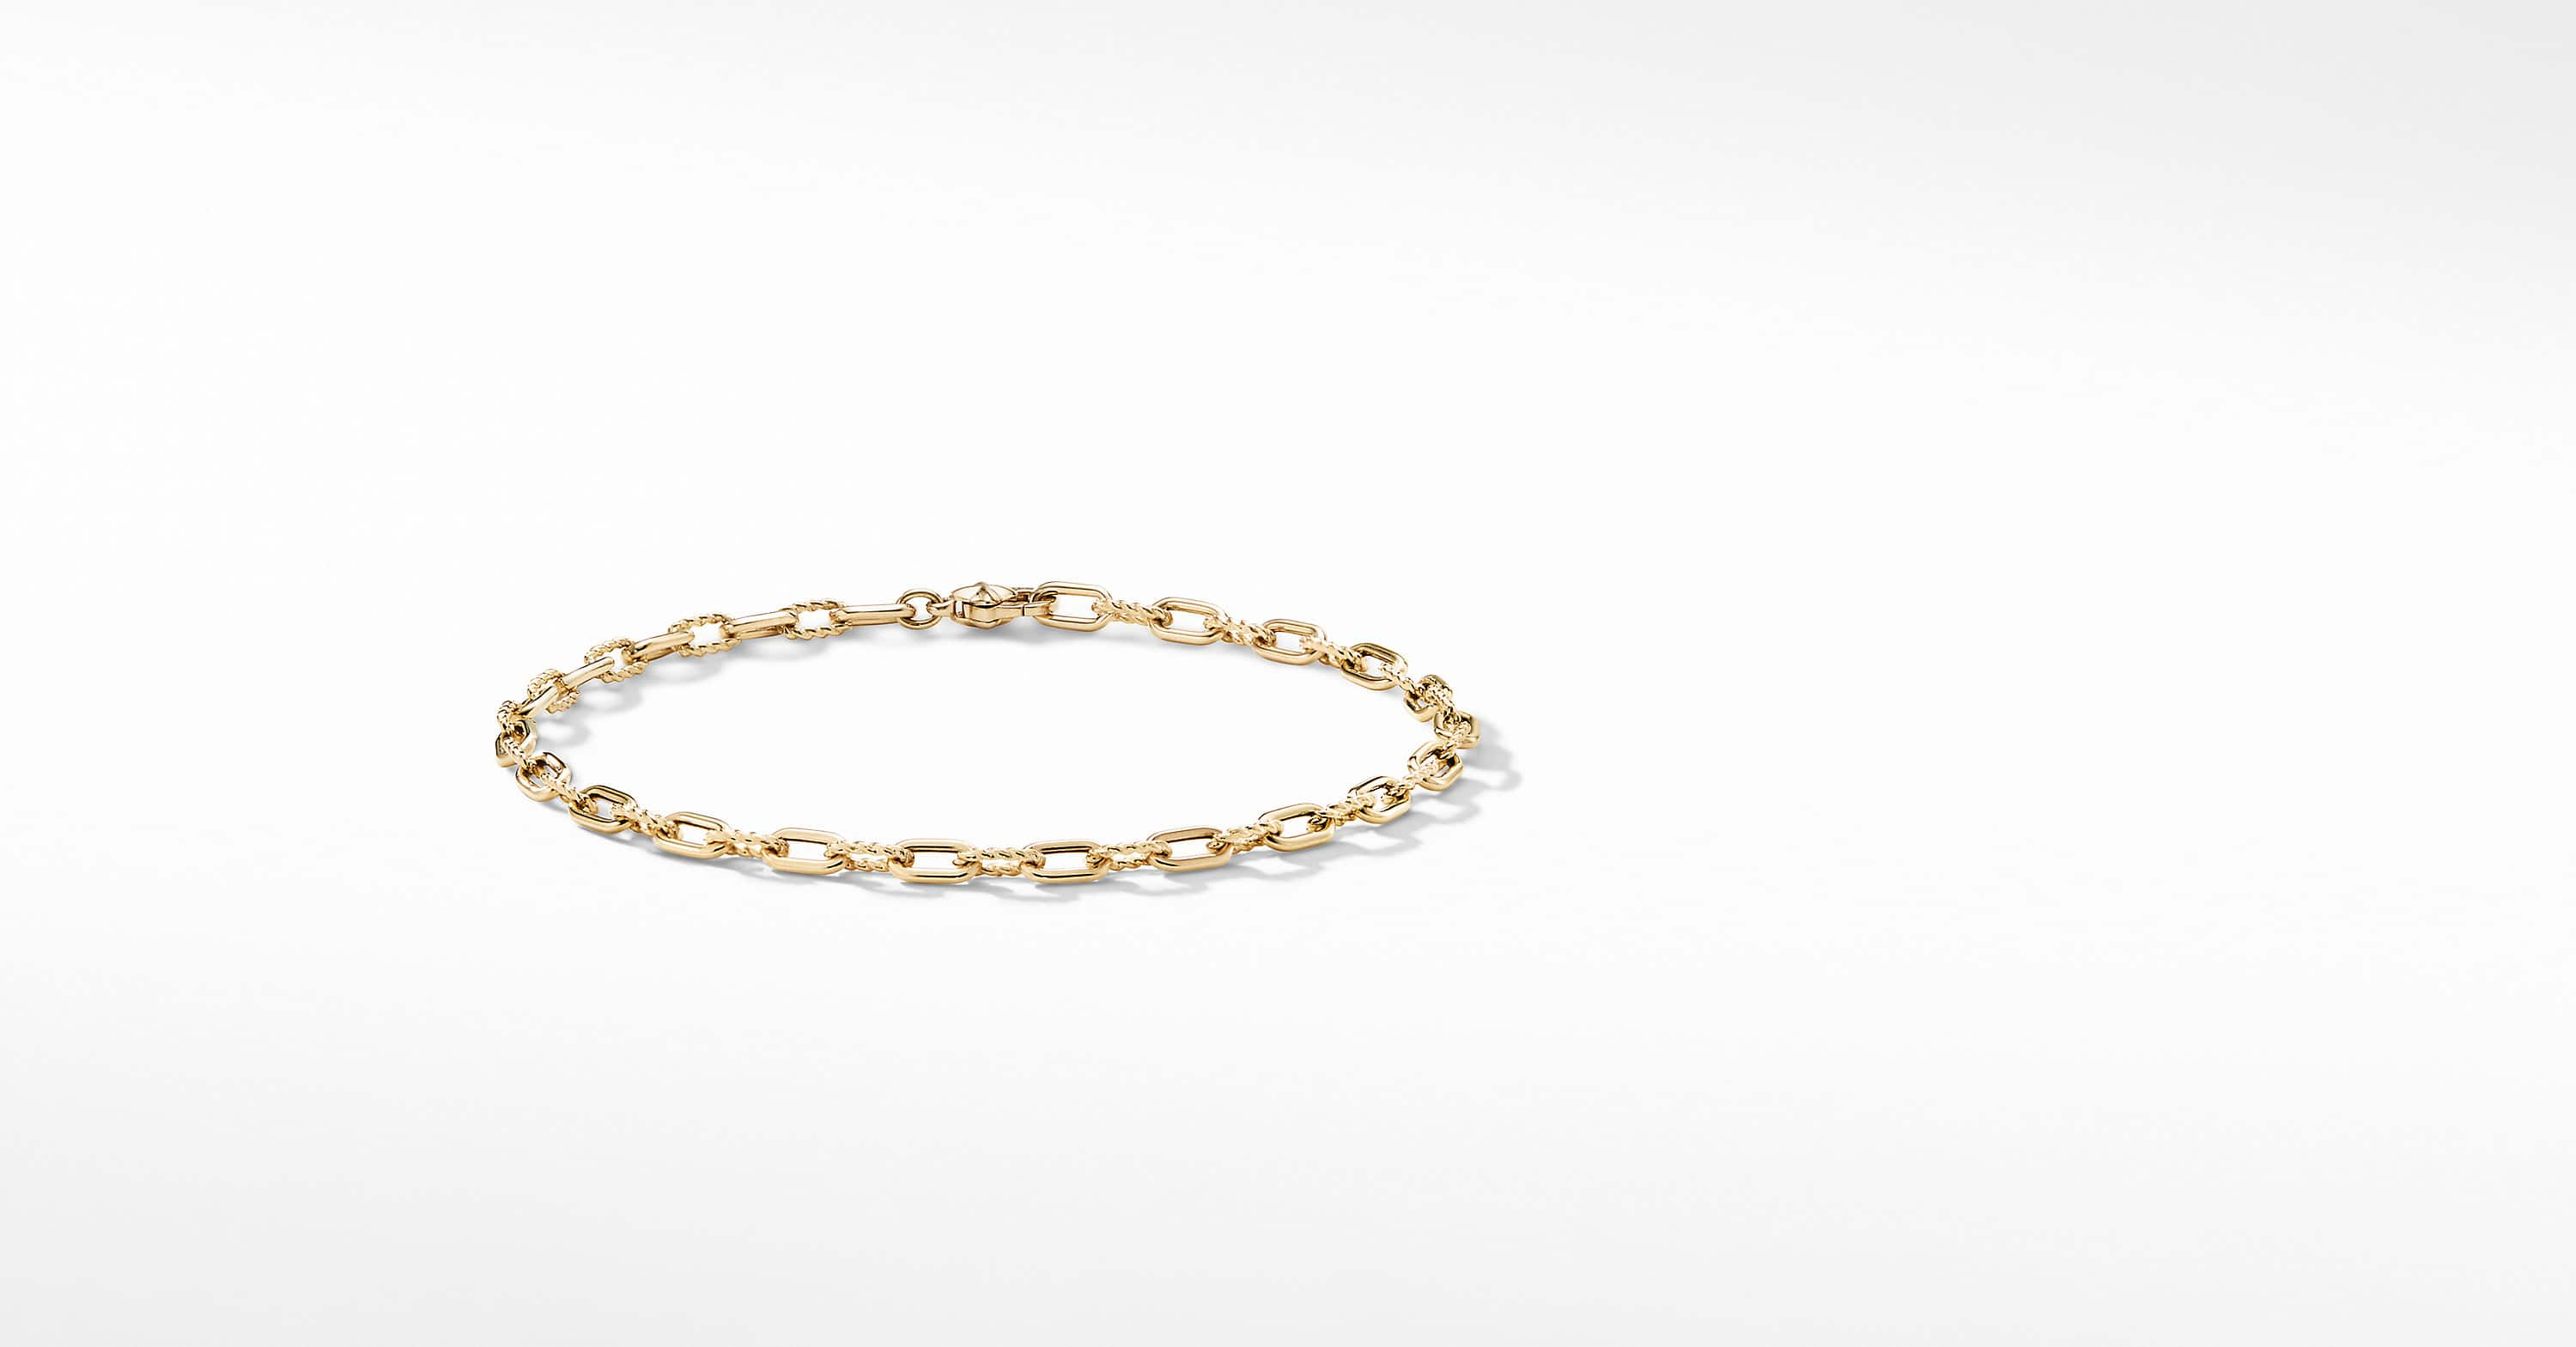 DY Madison Chain Thin Bracelet in 18K Gold, 3mm